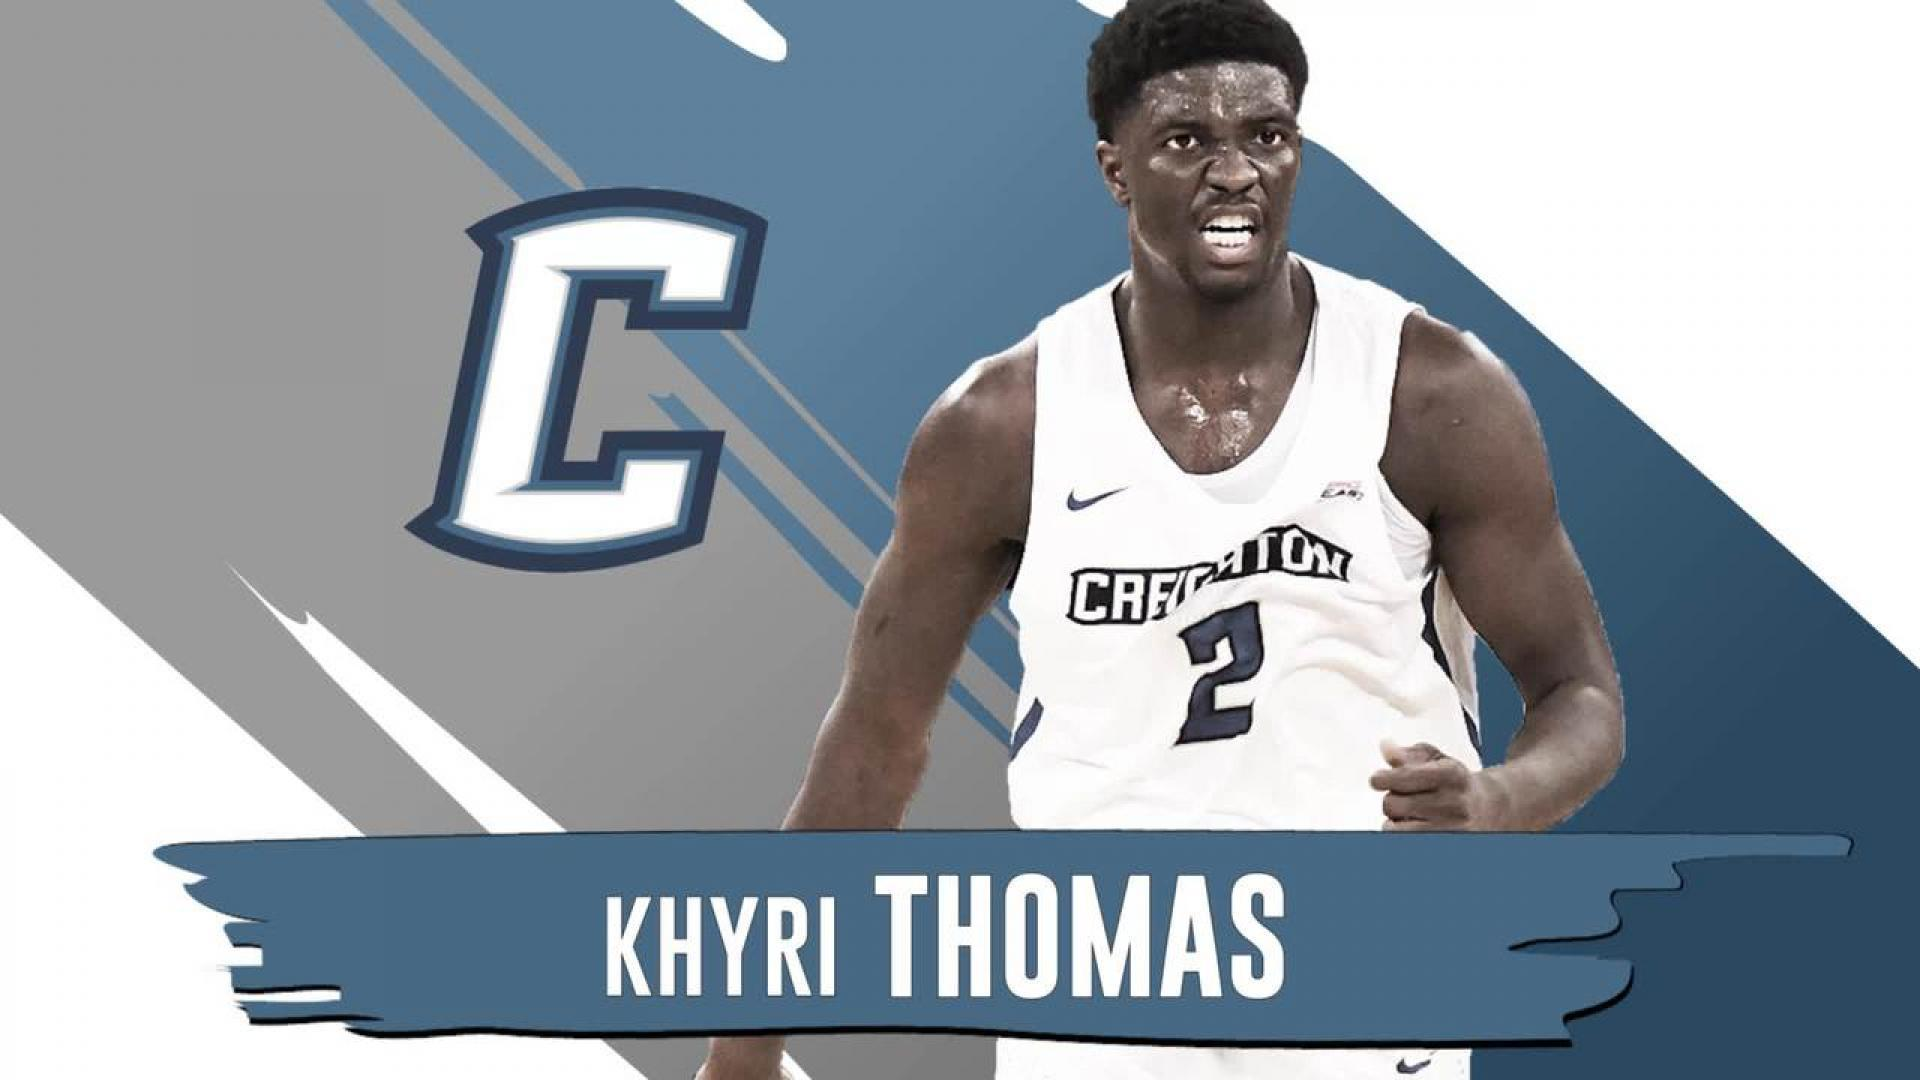 e5ee55f4e7b Draft Profile  Khyri Thomas